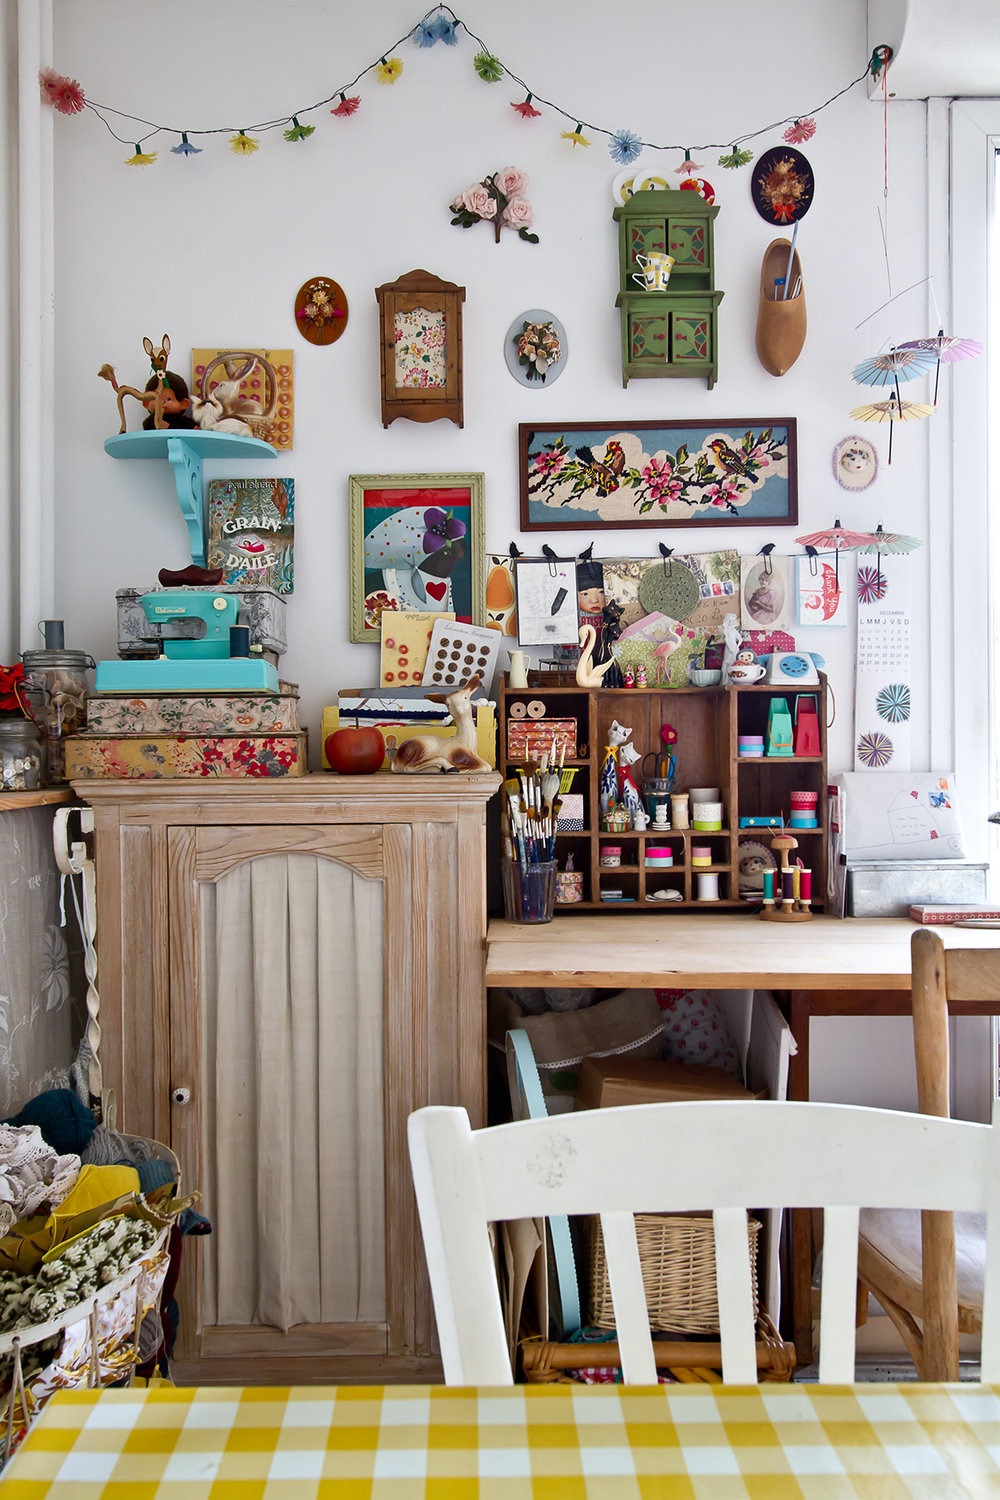 from issue 3 - home tour with Lise Meunier - Photo: Leigh Metcalf